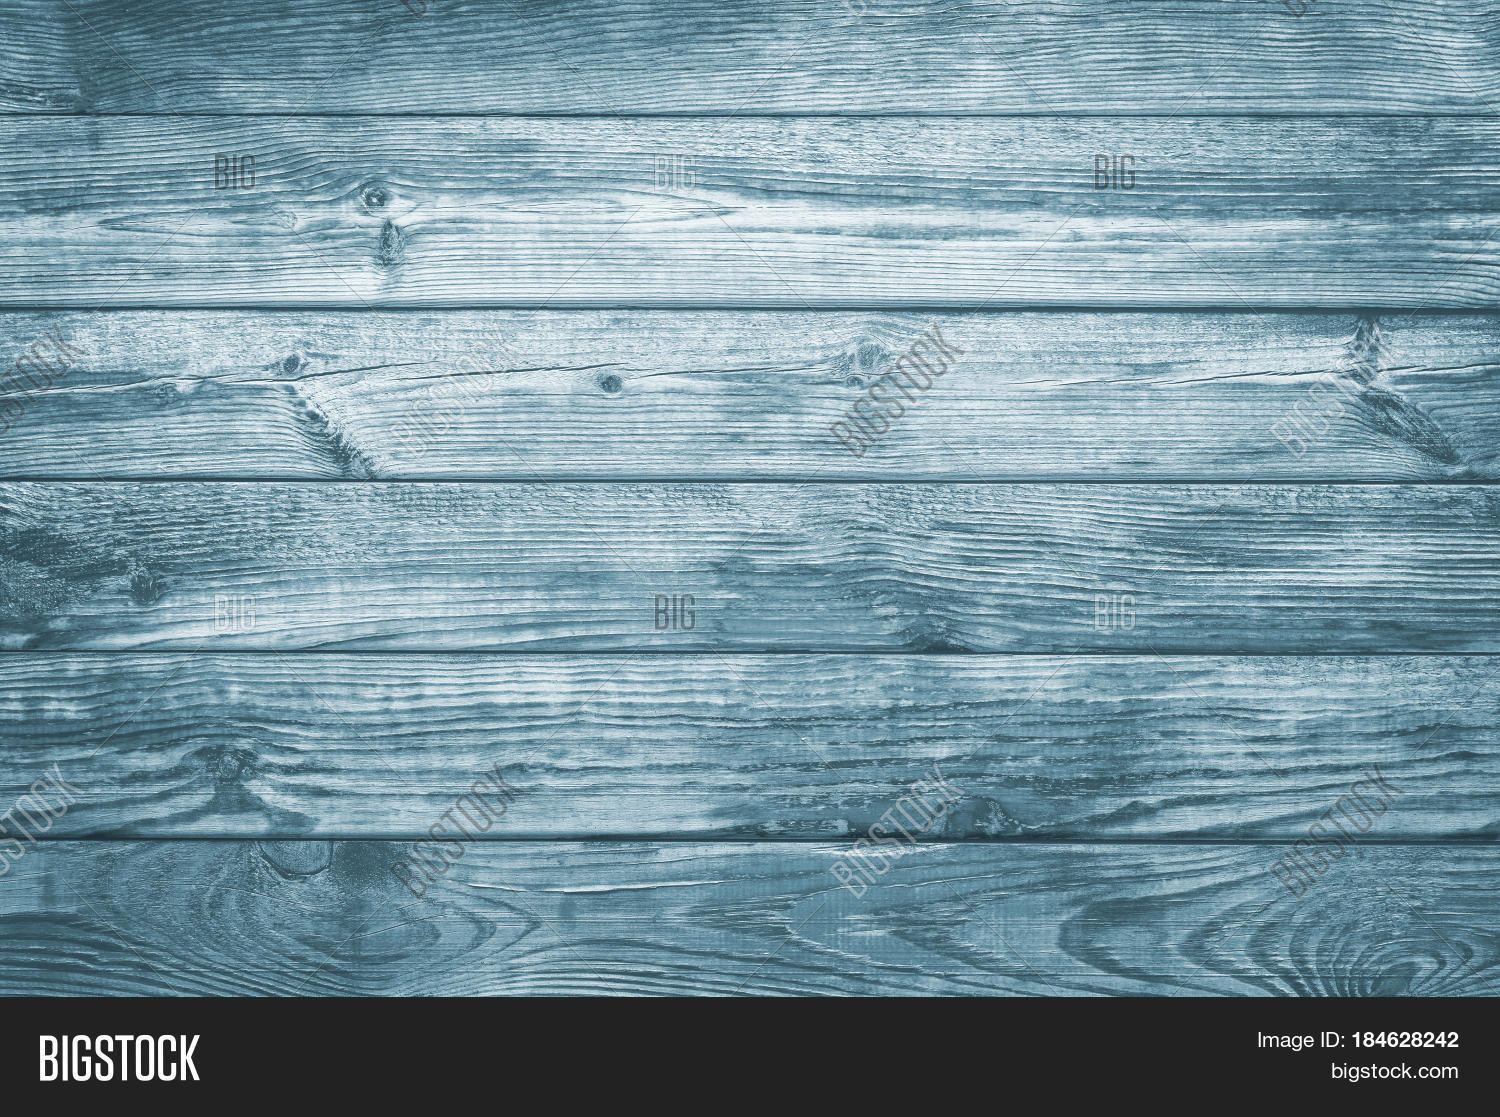 blue wood texture and background rustic old wooden aged45 blue